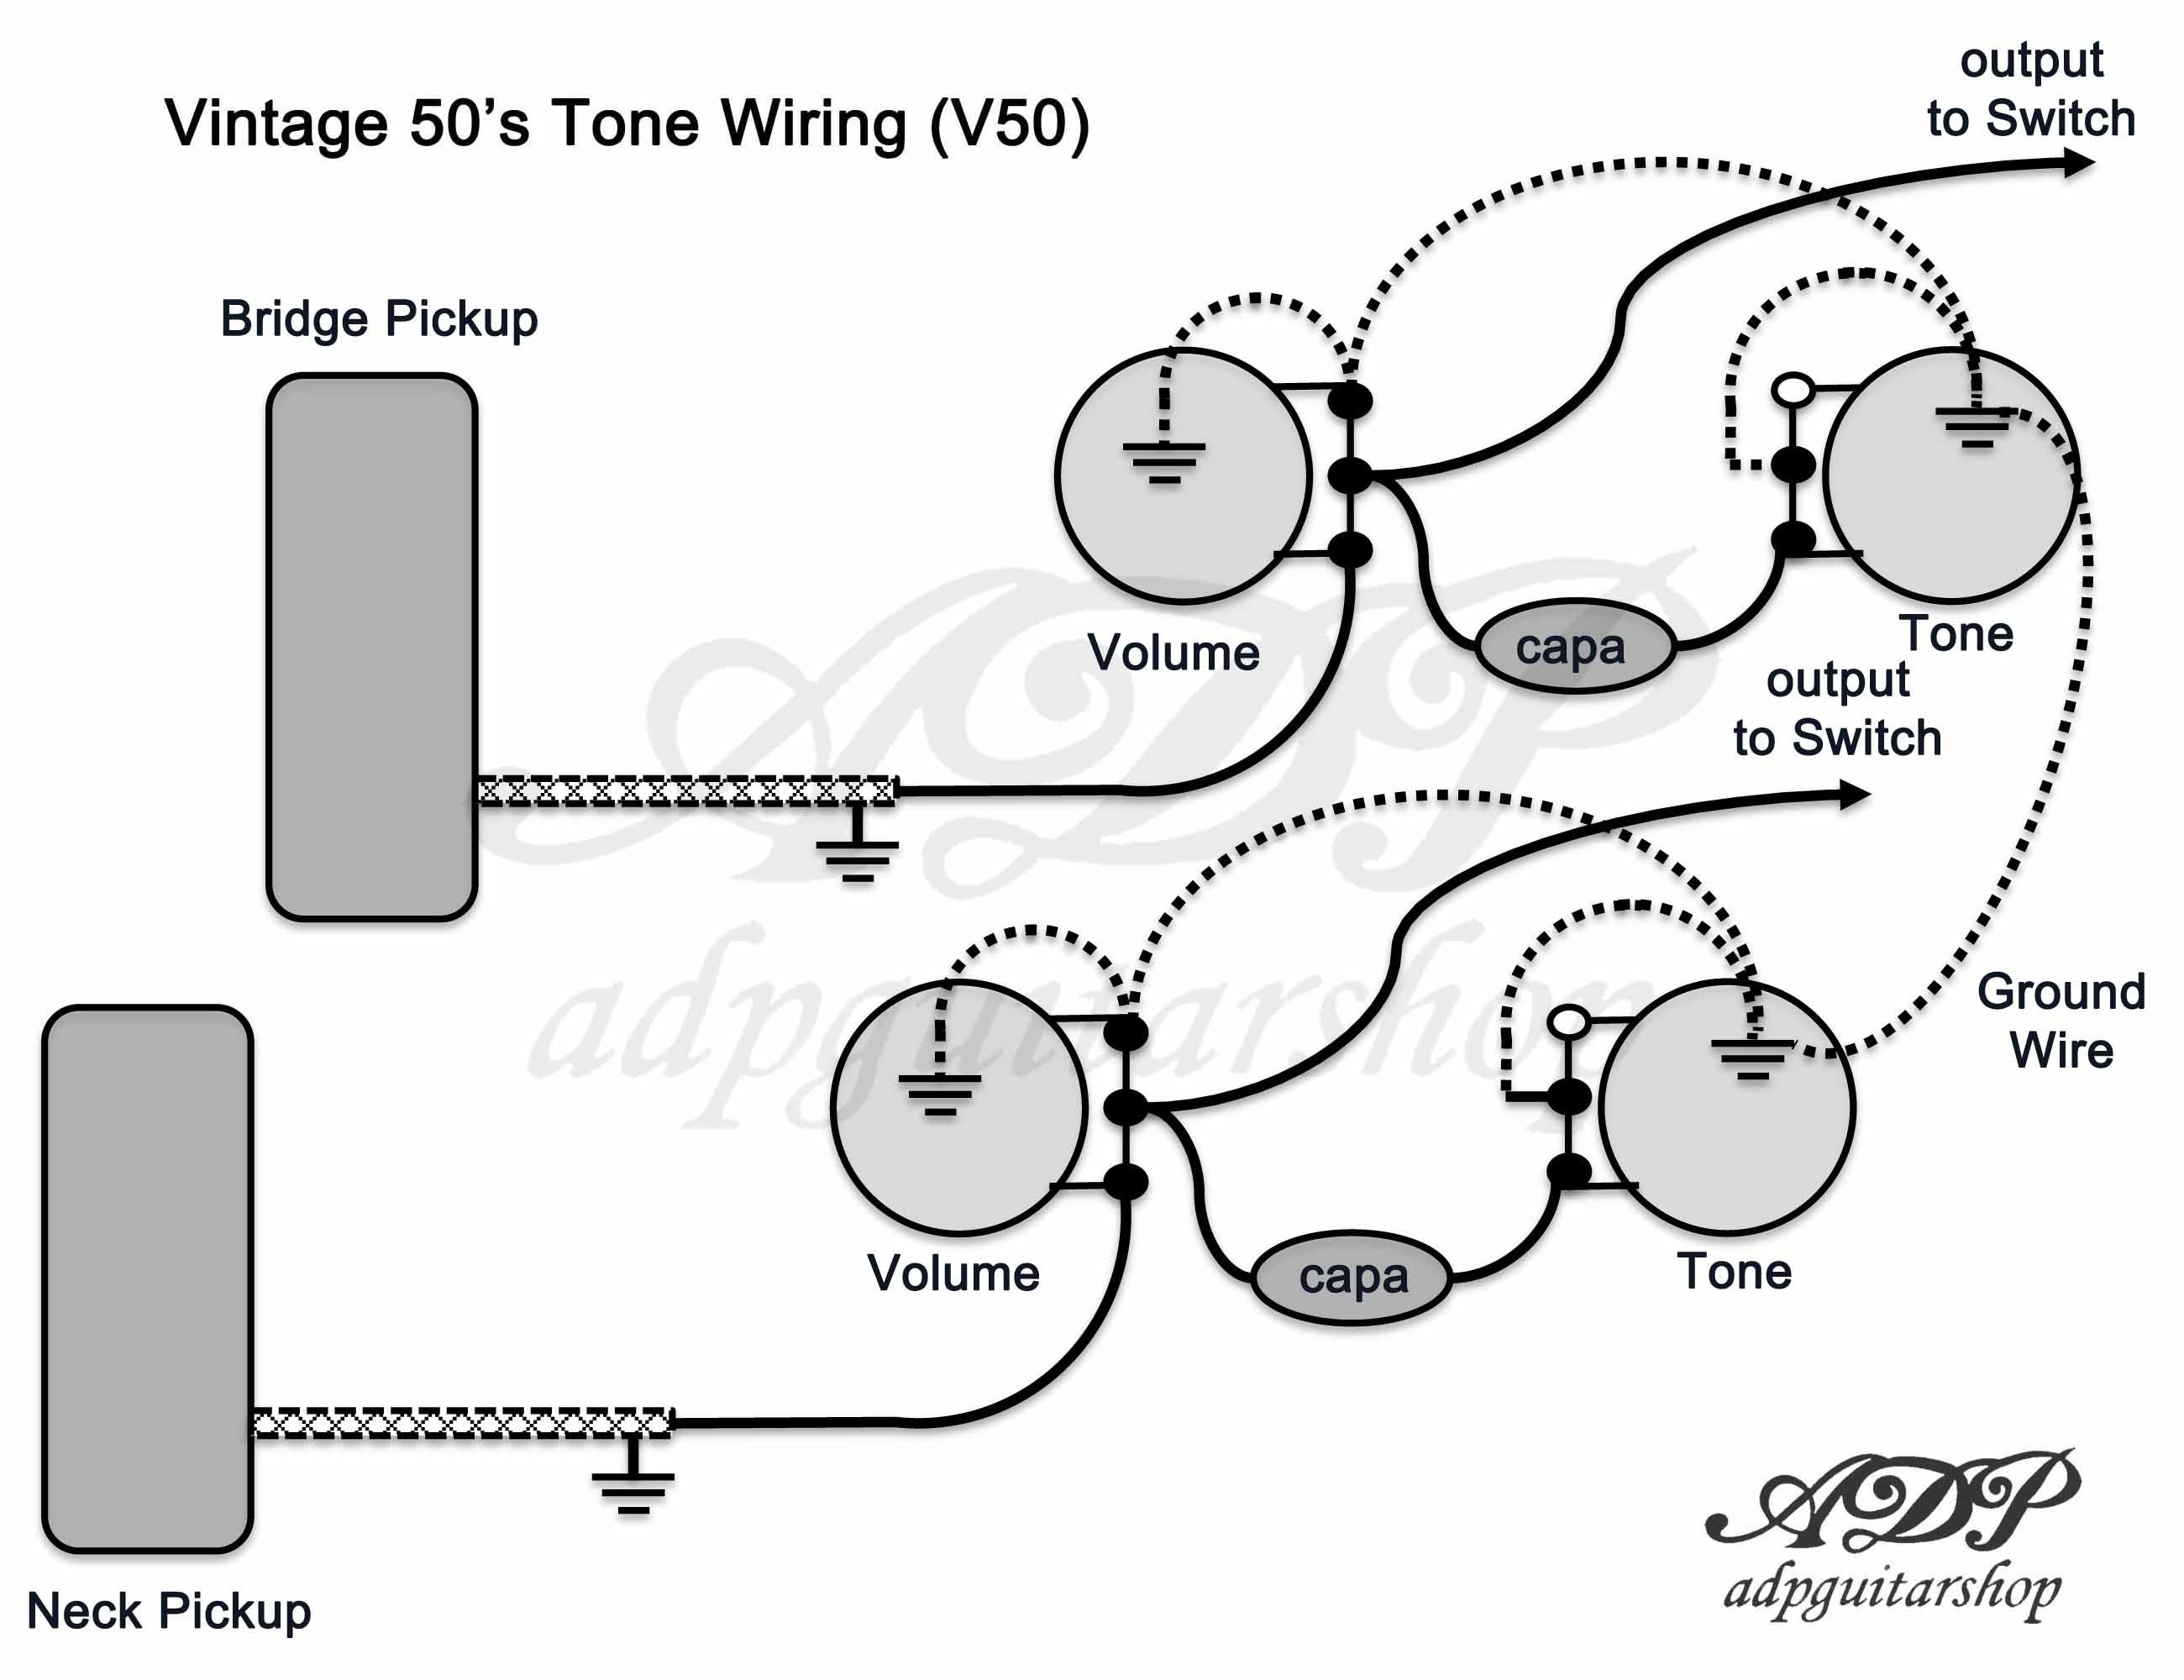 Wiring Diagram For Gibson Flying V - Trusted Wiring Diagram Online on gibson es-335 wiring, gibson 3 way switch wiring, gibson trini lopez, gibson dark fire, gibson les paul wiring, gibson 57 pick up wire diagram, gibson sg wiring, gibson headstock overlay, gibson pickup wiring one kill, gibson assembly diagram, gibson pickup schematic, gibson flying v pickup wiring, gibson double neck, gibson p-90 wiring, gibson headstock decal, gibson humbucker wiring, gibson furnace diagram,